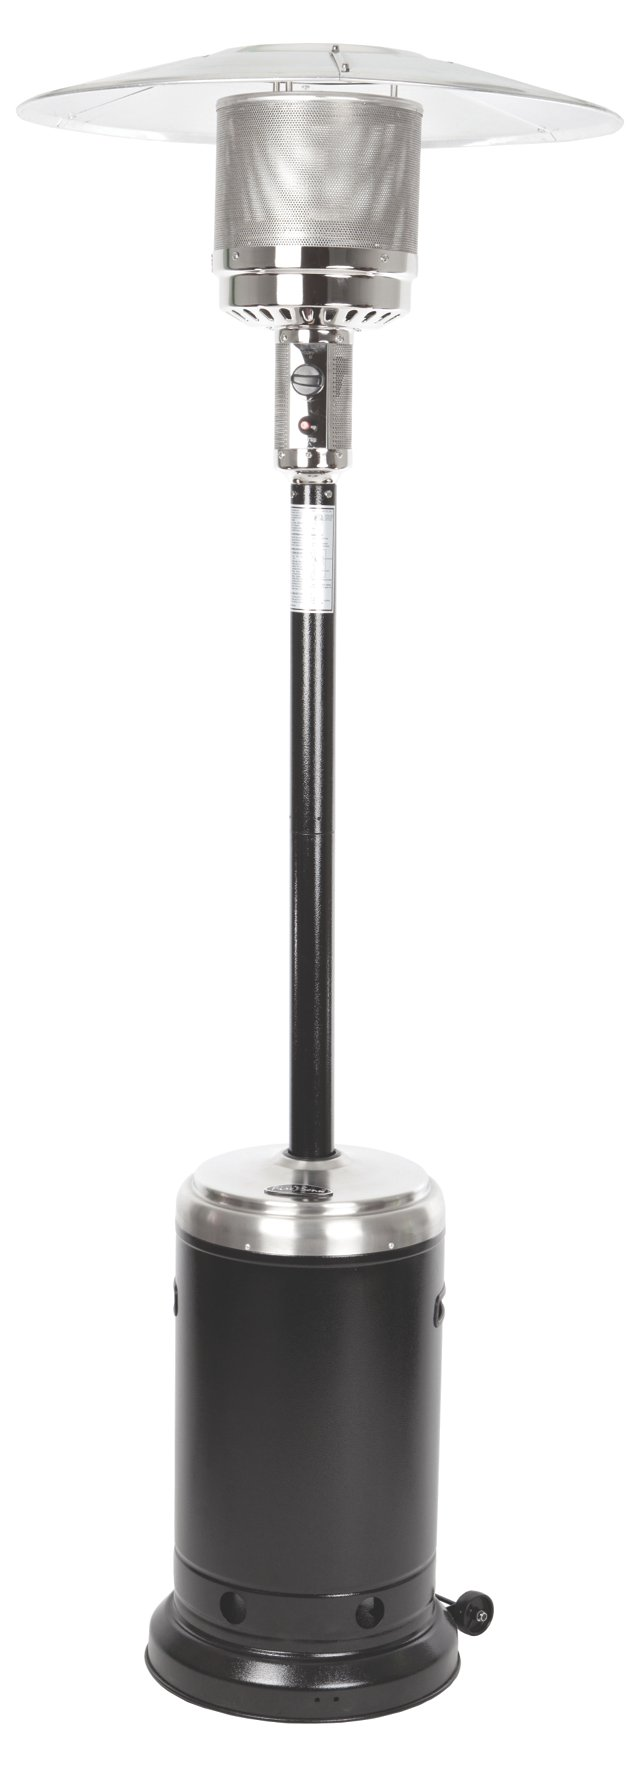 "86"" Commercial Patio Heater, Black"